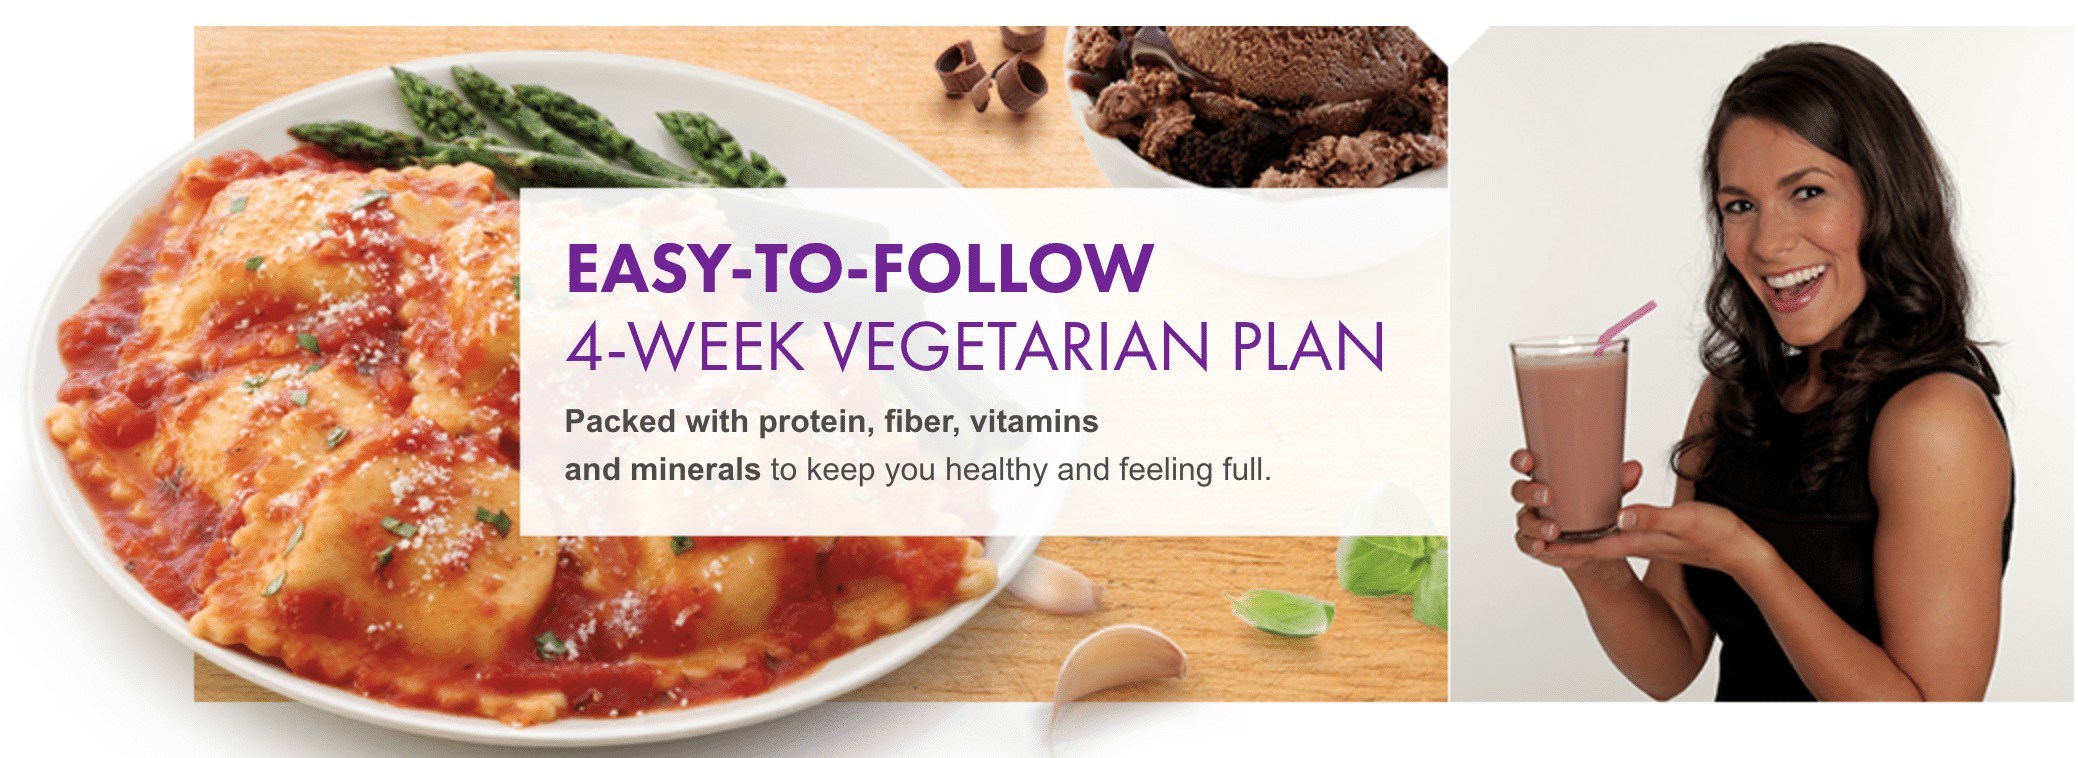 nutrisystem vegetarian reviews and pricing guide